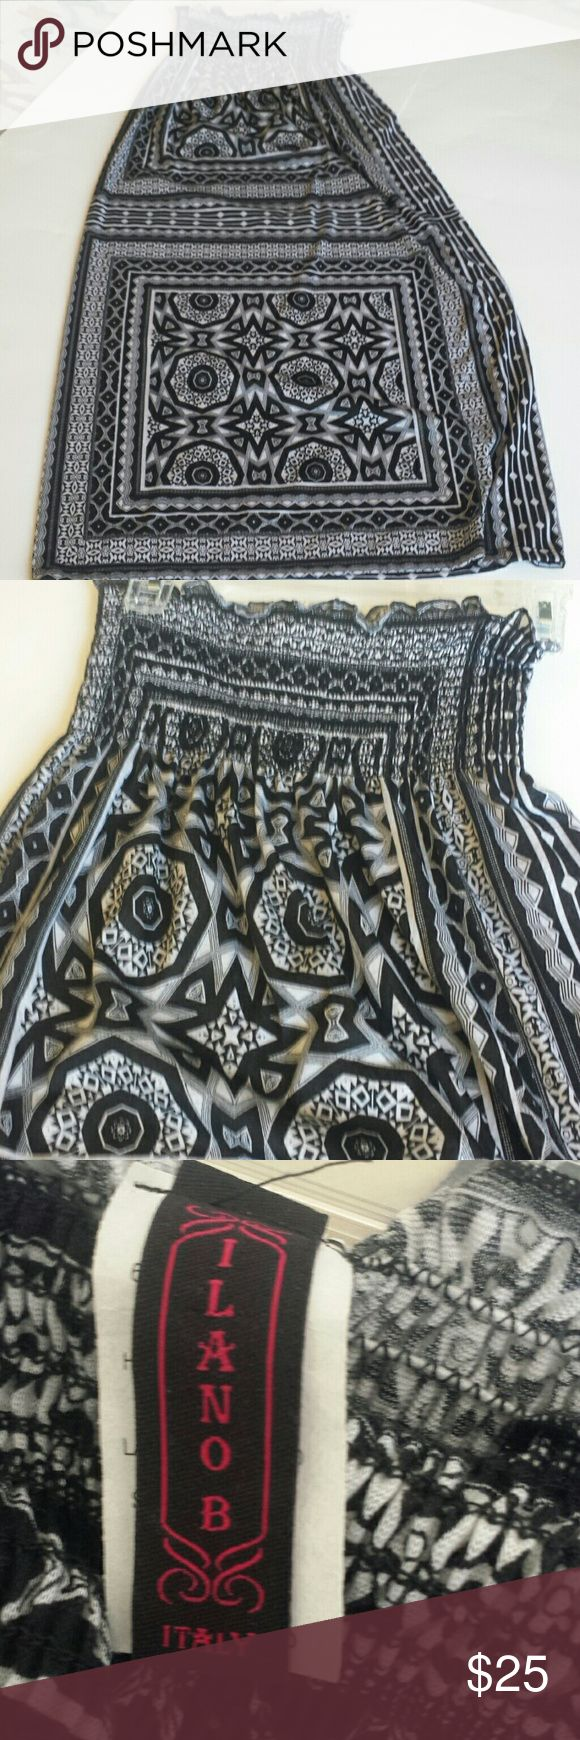 Ilanob Strapless dress black white Xs Aztec Gorgeous strapless sundress made in Italy size extra small polyester rayon spandex smocked top Aztec print black and white ilanob Dresses Maxi